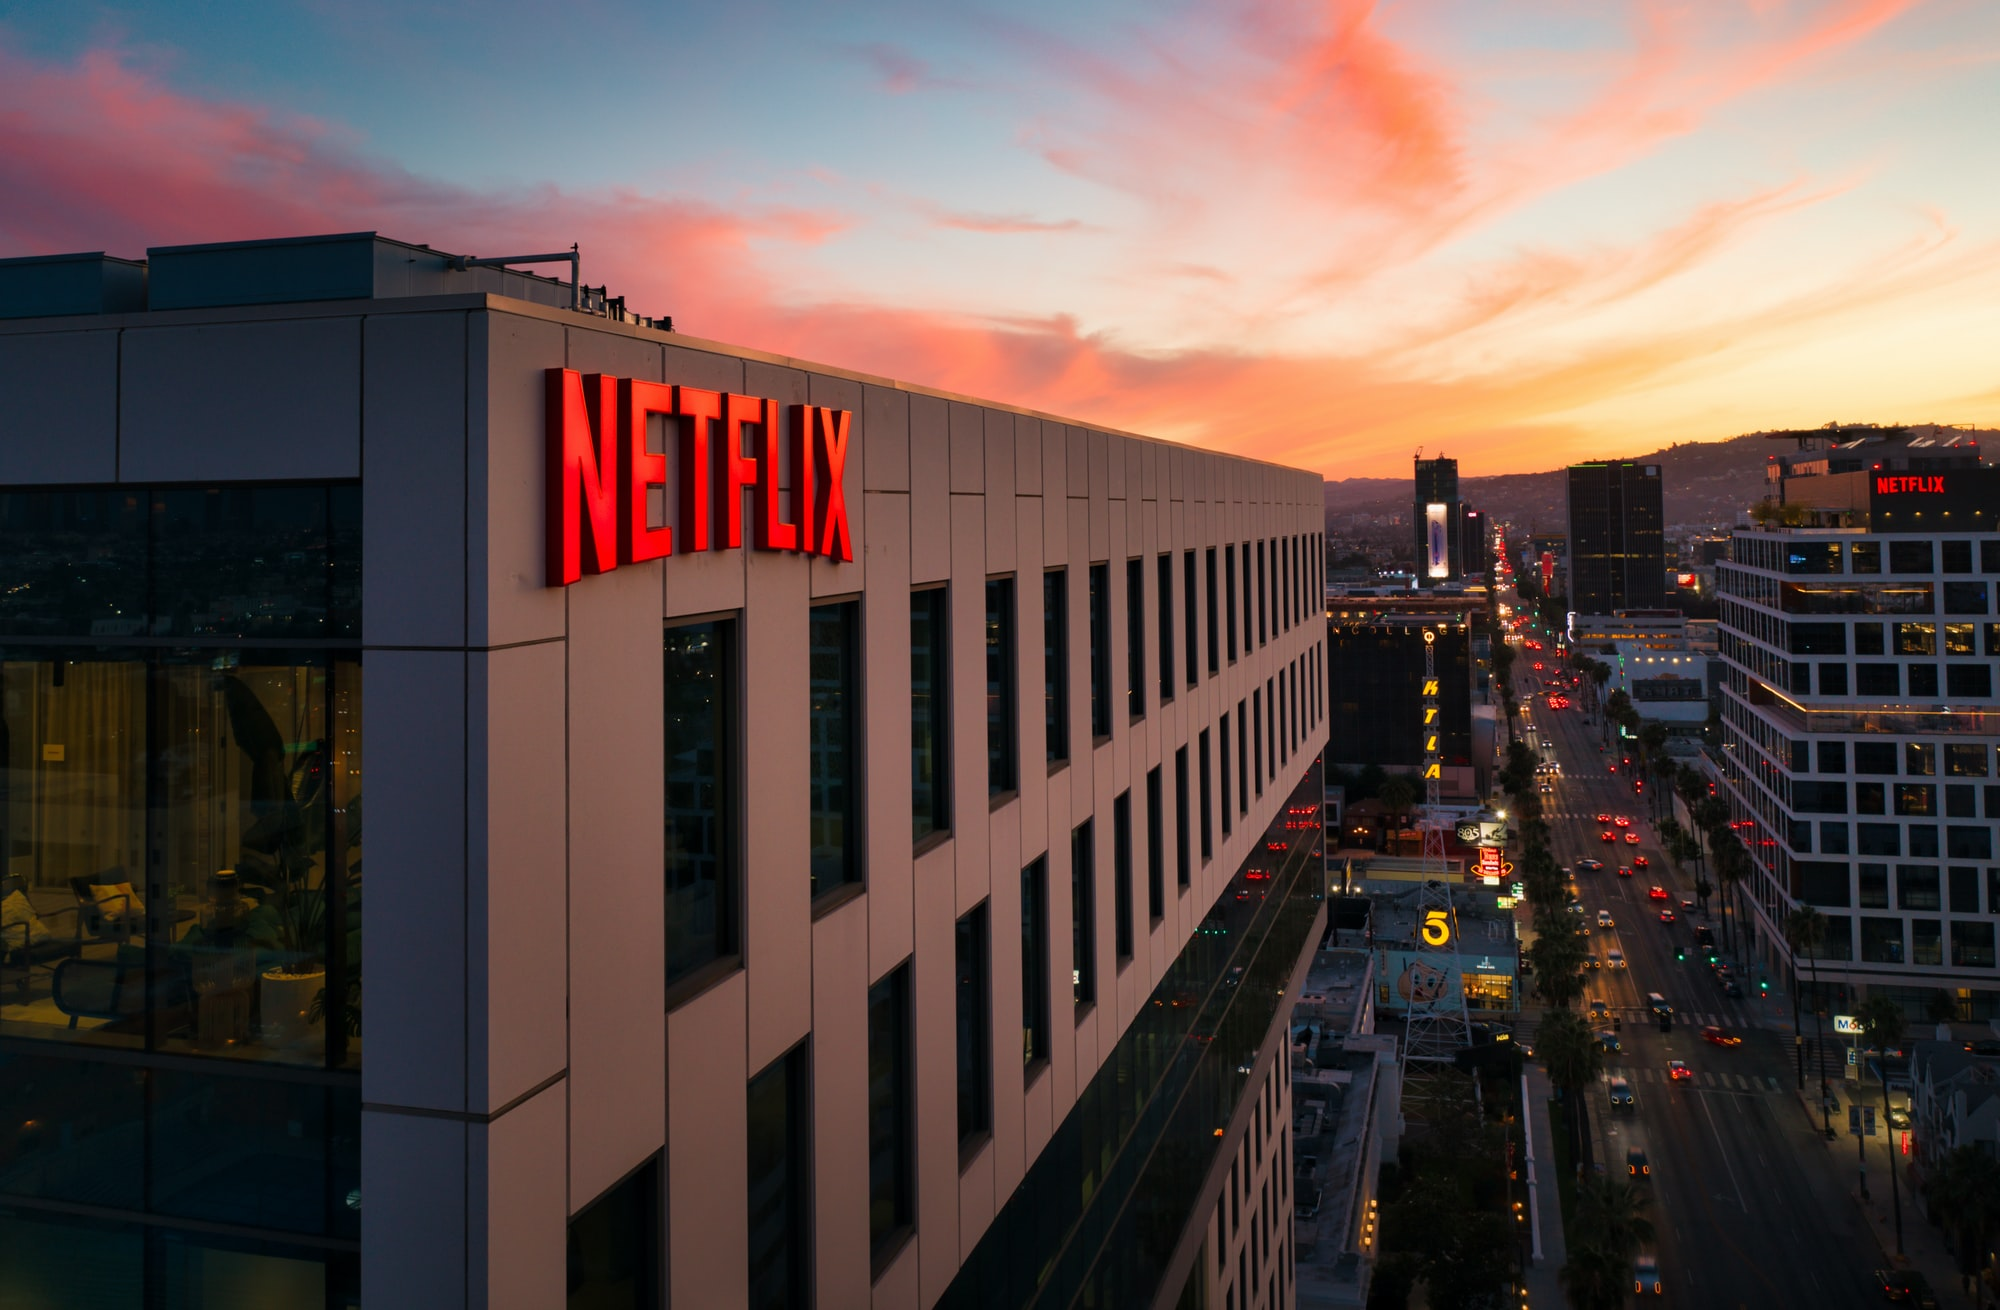 Netflix sign on a building at sunset.